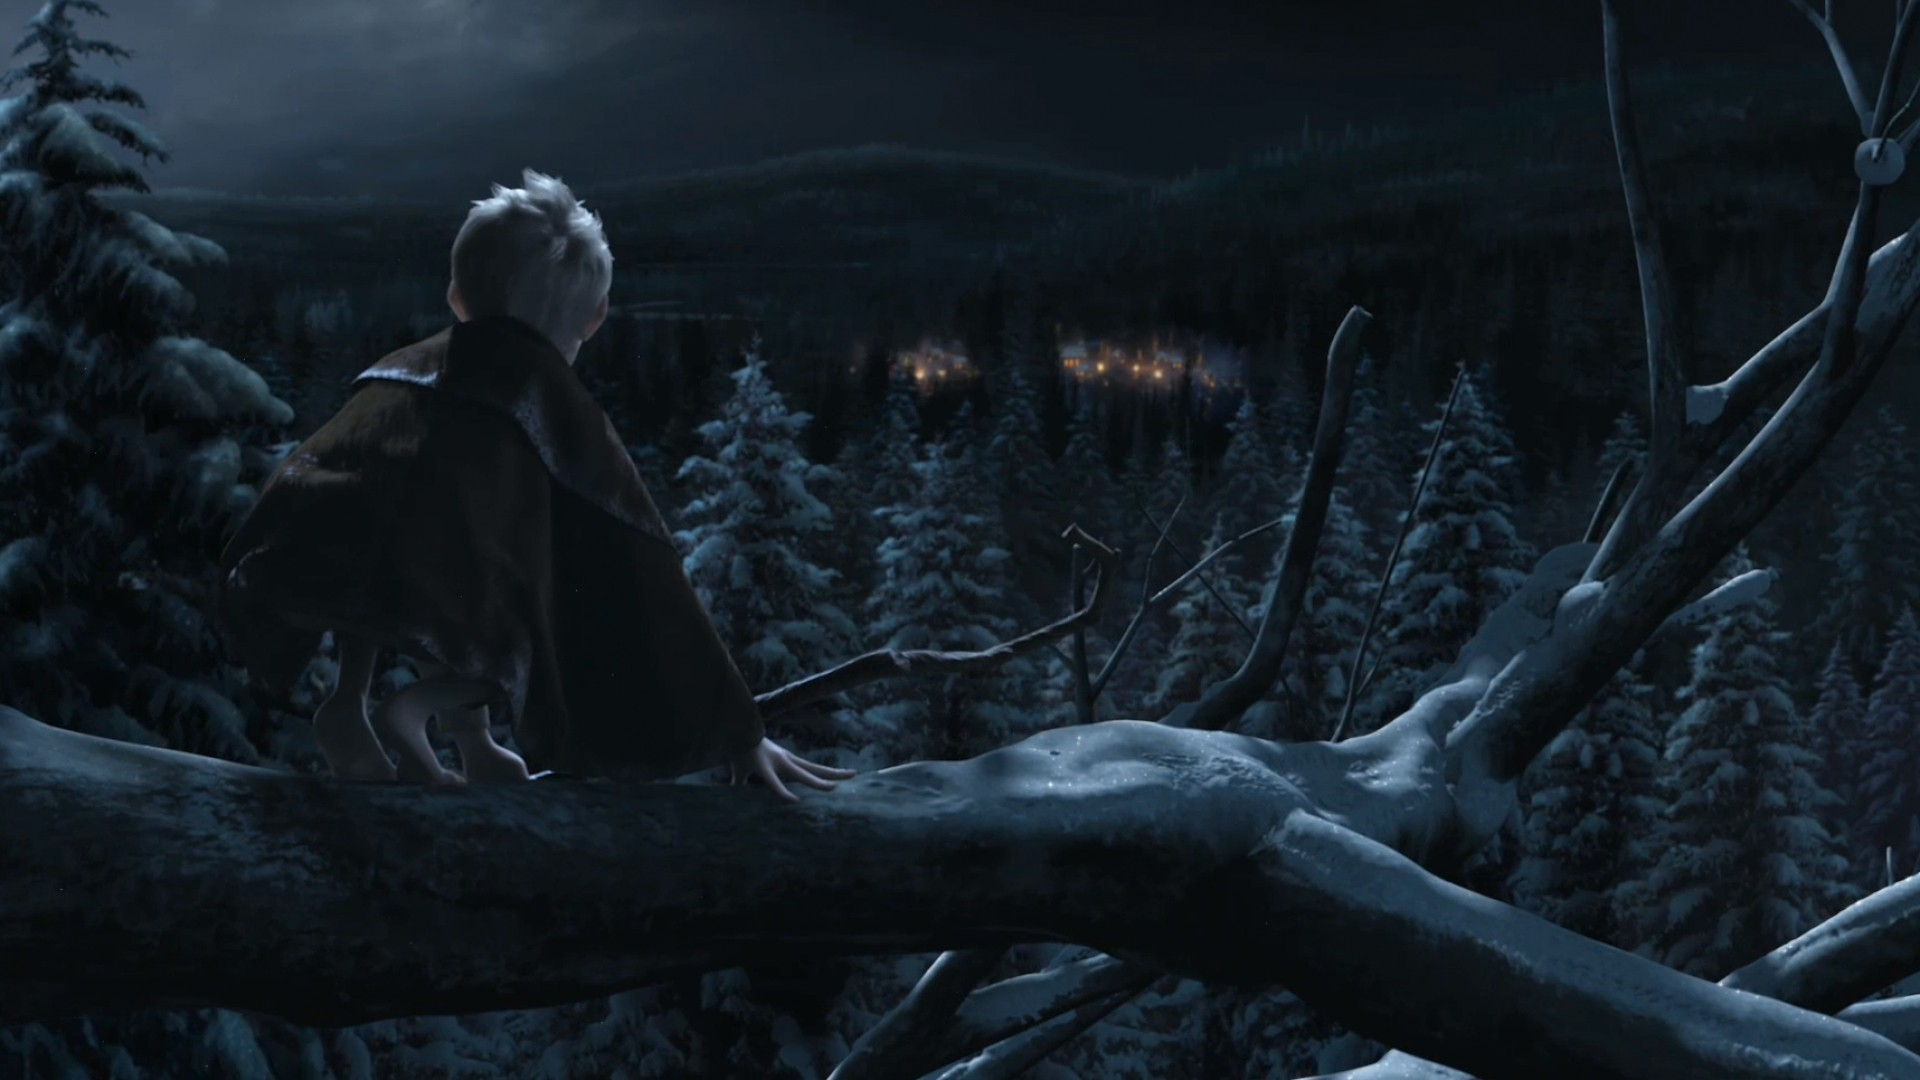 Full hd rise of the guardians wallpapers rise of the guardians full hd rise of the guardians wallpapers rise of the guardians 1920x1080 altavistaventures Gallery